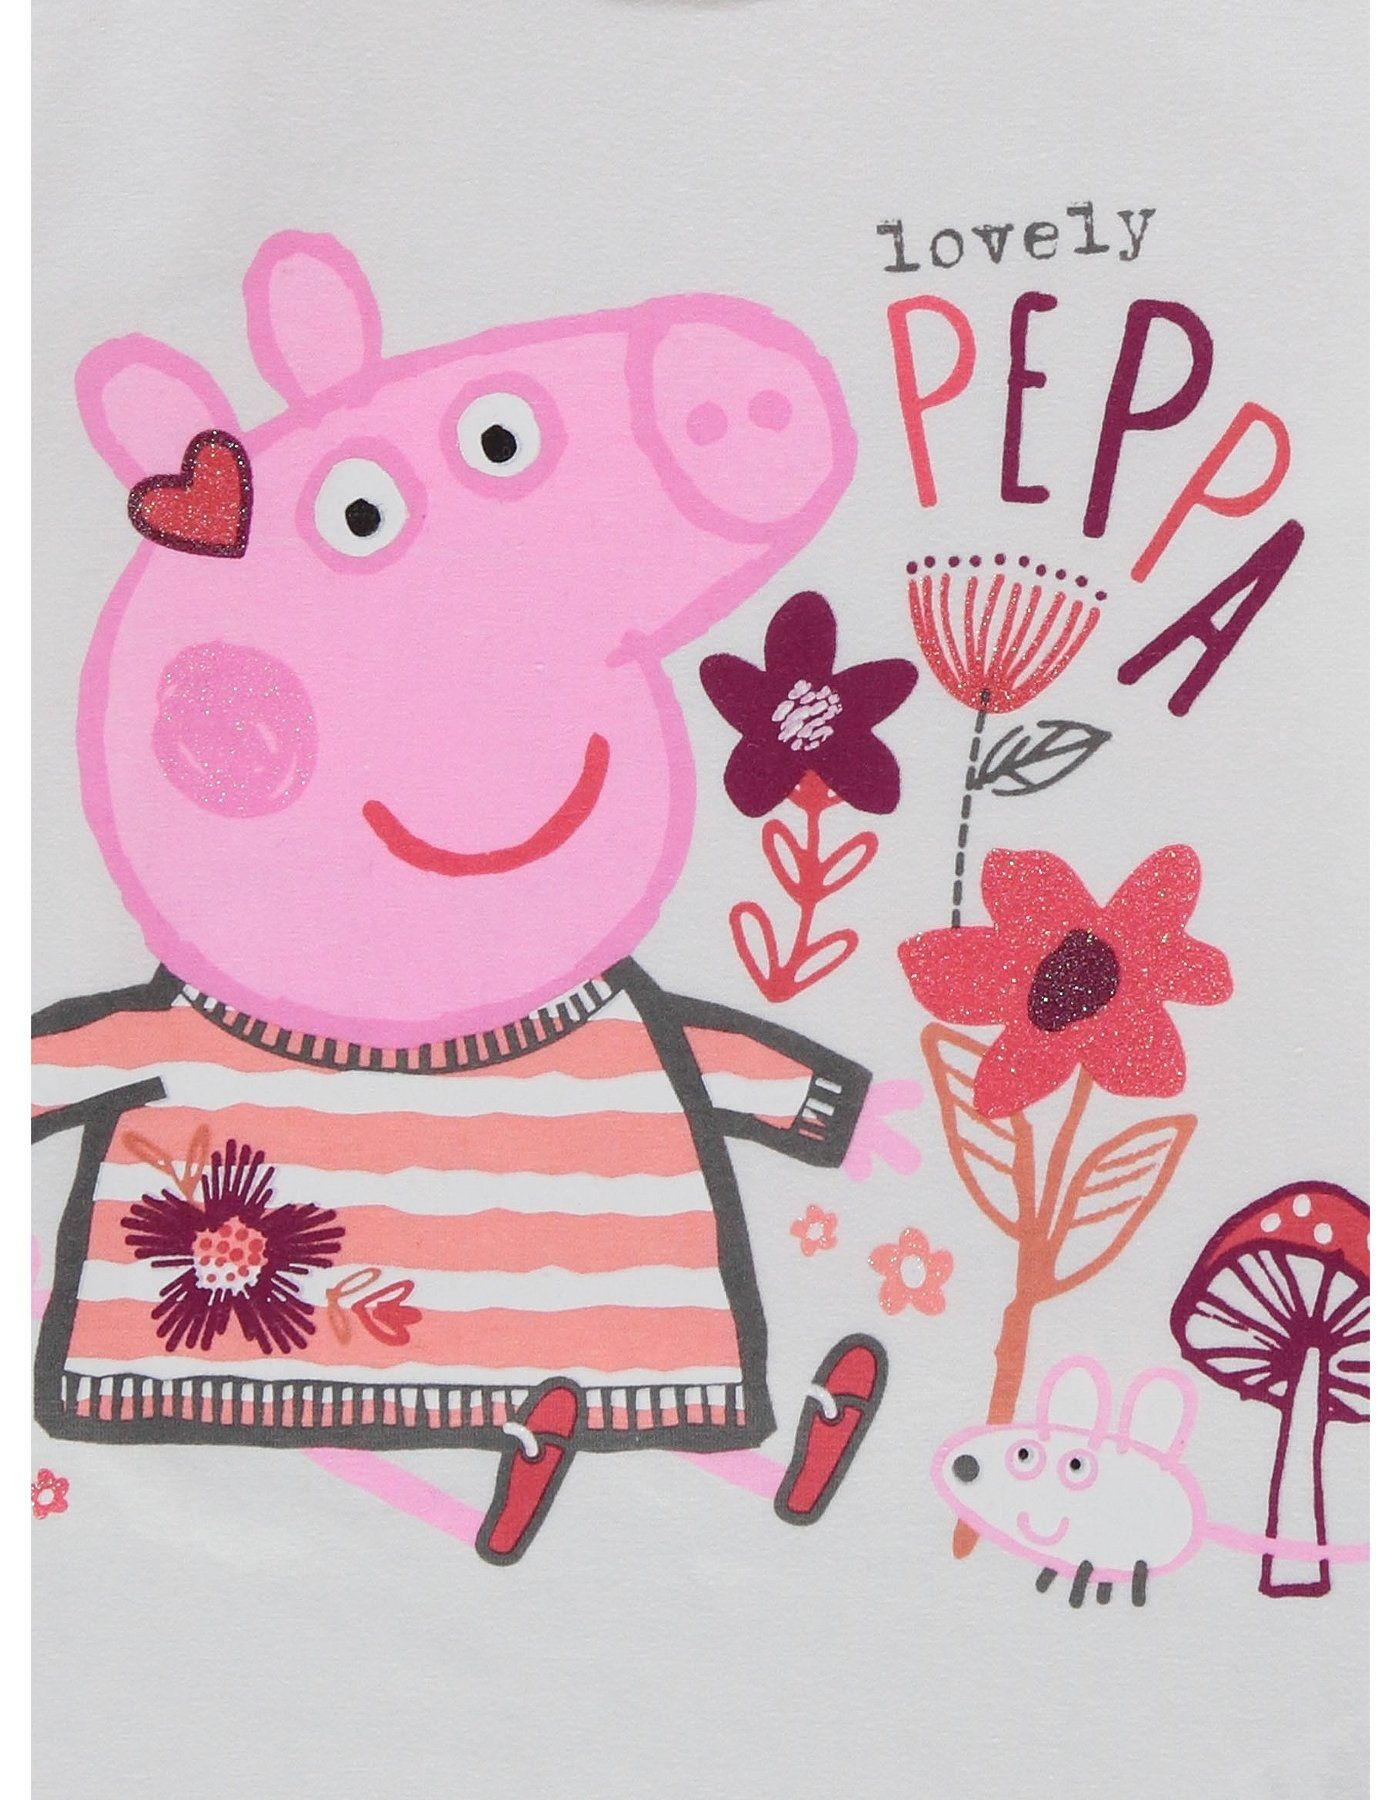 2 Pack Peppa Pig Tops, read reviews and buy online at George. Shop from our latest range in Kids. They'll be stepping out in style in these lovely tops. Feat...